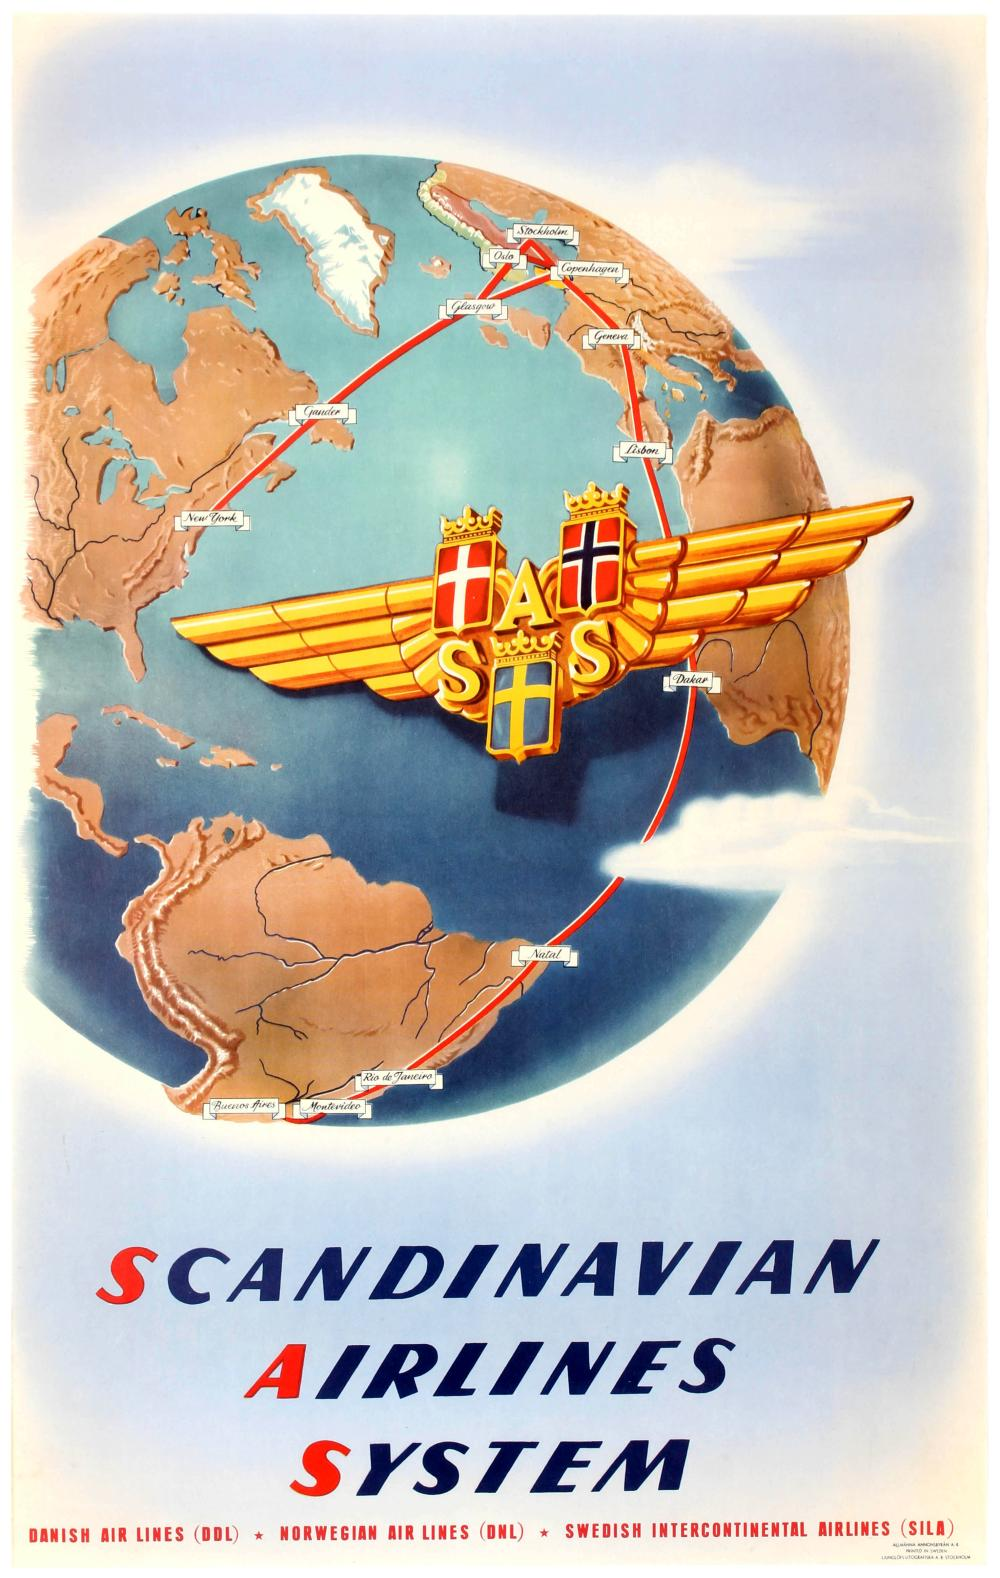 TRAVEL POSTER SCANDINAVIAN AIRLINES SYSTEM SAS ROUTE MAP on israel airlines route map, biman route map, air china route map, burlington route map, aegean route map, air new zealand route map, american route map, pan mass route map, air berlin route map, saudi arabian airlines route map, etihad airways route map, united route map, syrian airlines route map, croatia airlines route map, alitalia route map, cubana airlines route map, estonian air route map, air india route map, luxair route map,